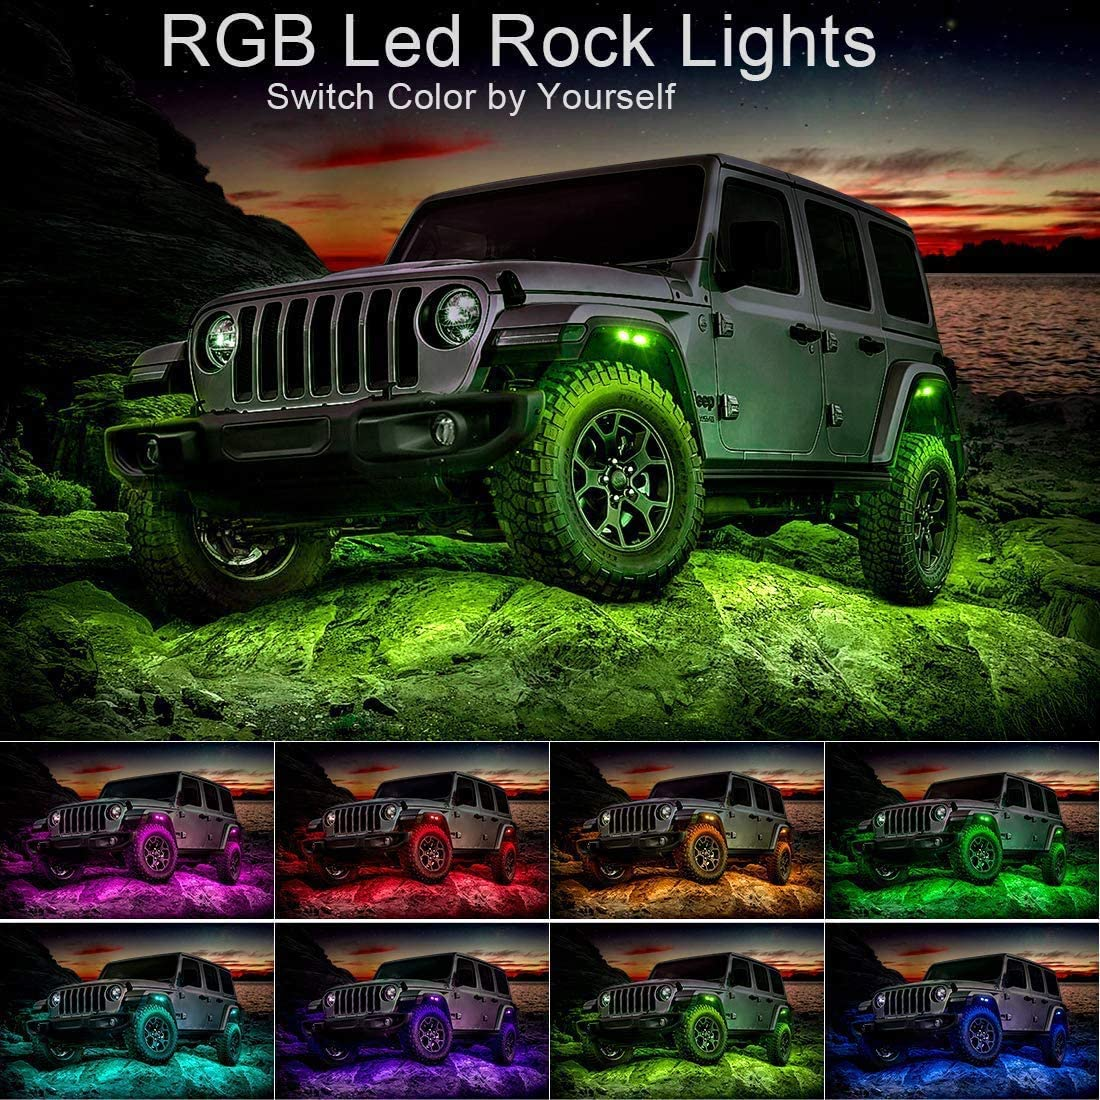 Cross-Country Truck Flashing Music Mode Bluetooth RGB Led Rock Light Kit for Trucks ATV Jeep Underground Glow Trail Rig Lamp Timing Light Function 8 Pods Led Rock Lights with Application Control